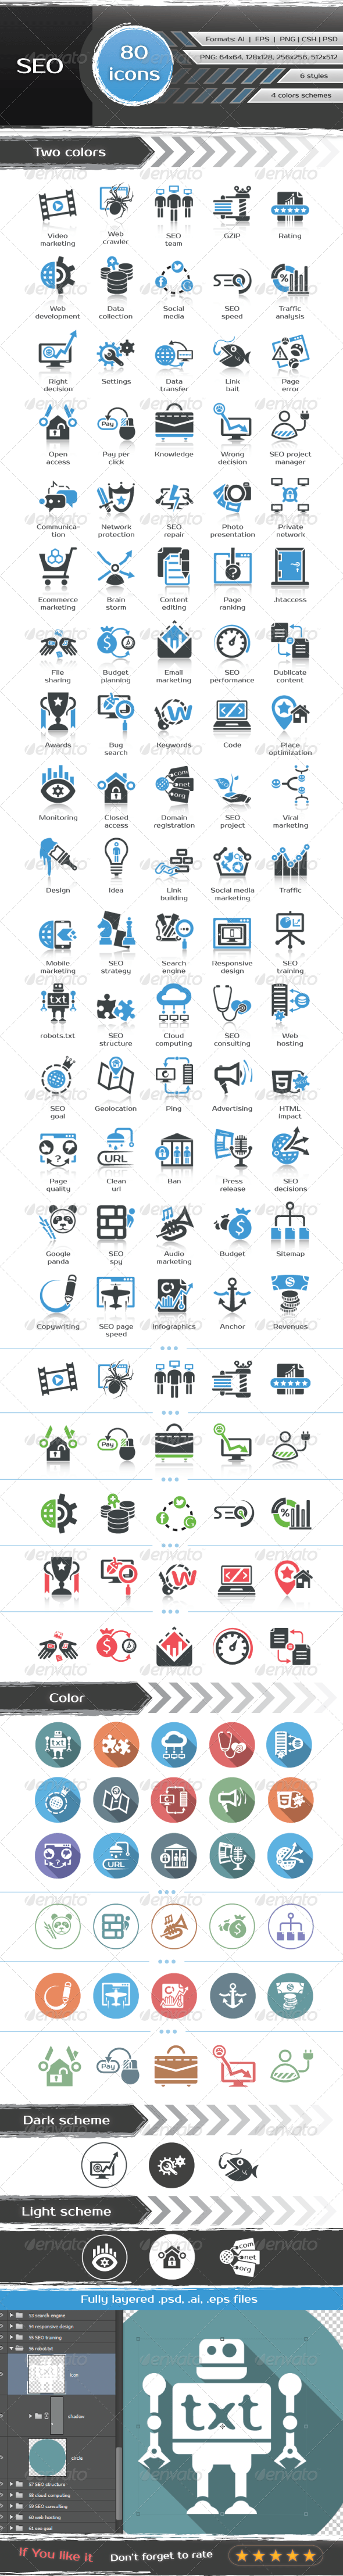 GraphicRiver 80 SEO icons 6693849